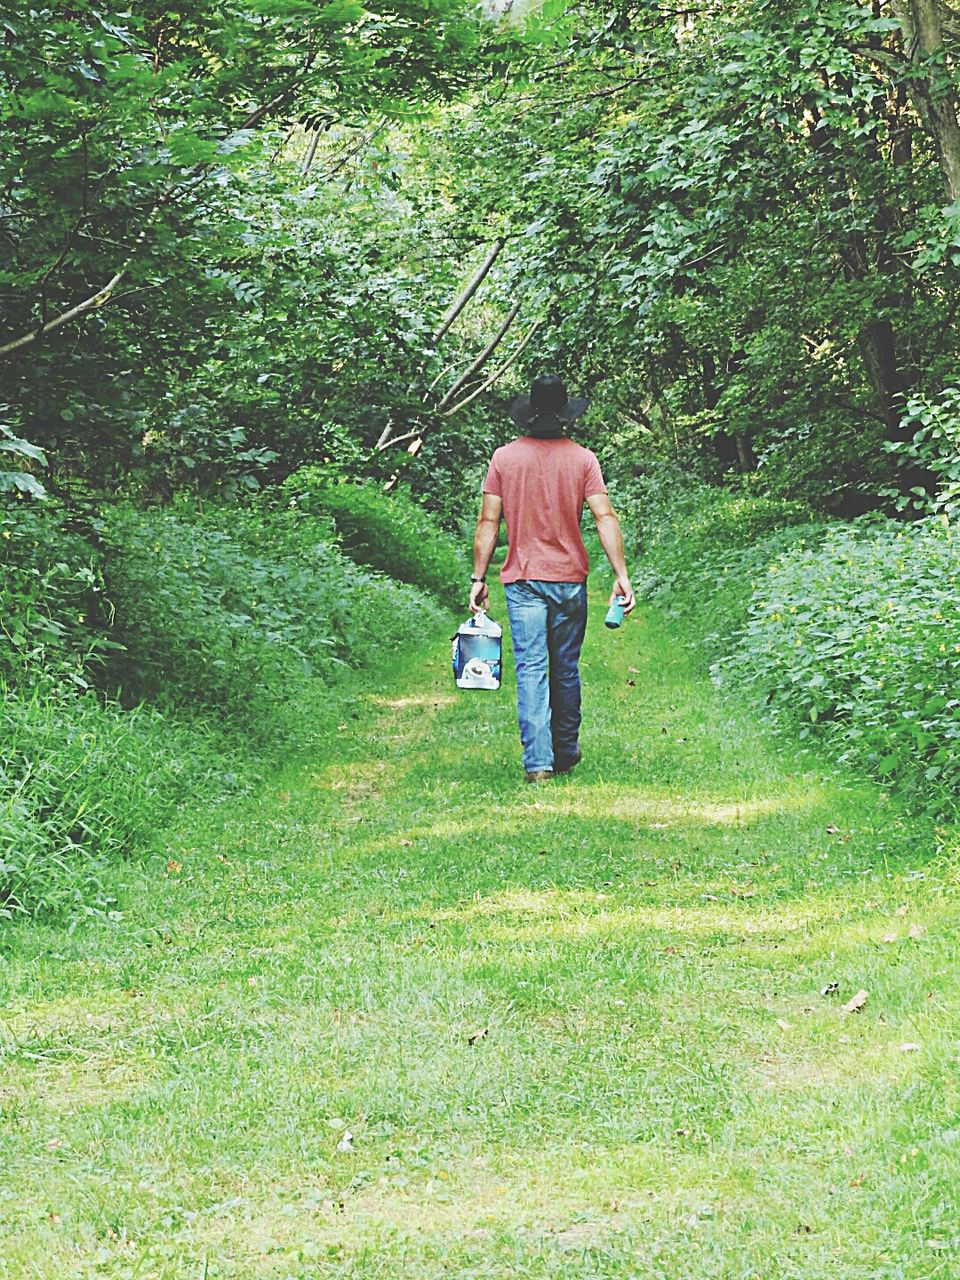 Rear View Of Man Carrying Bag On Footpath Amidst Trees In Forest